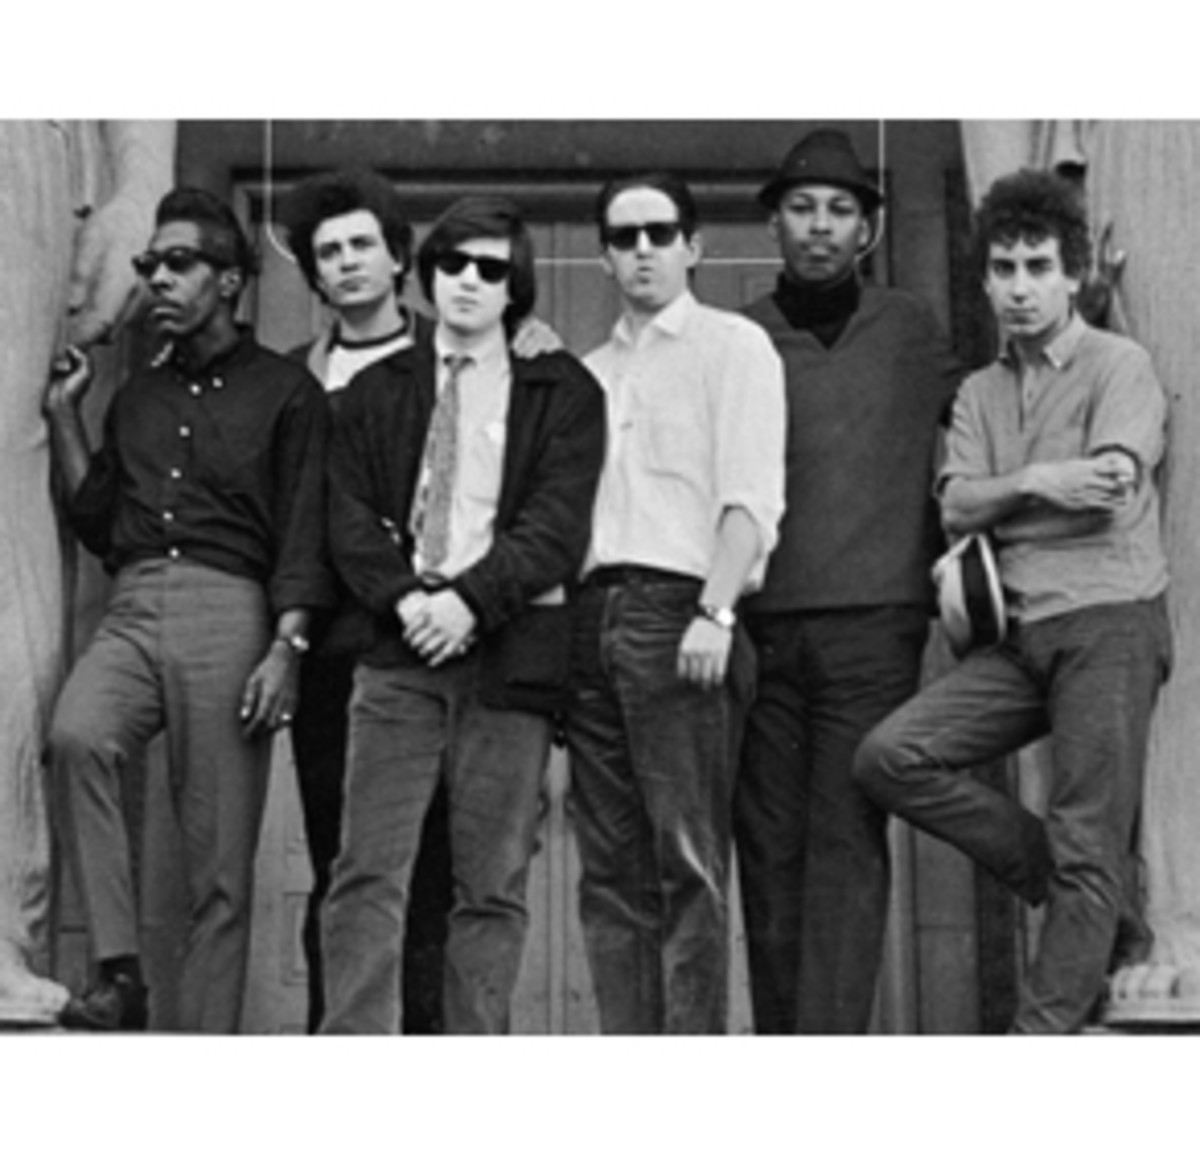 Paul Butterfield Blues Band. Courtesy Rock And Roll Hall of Fame.